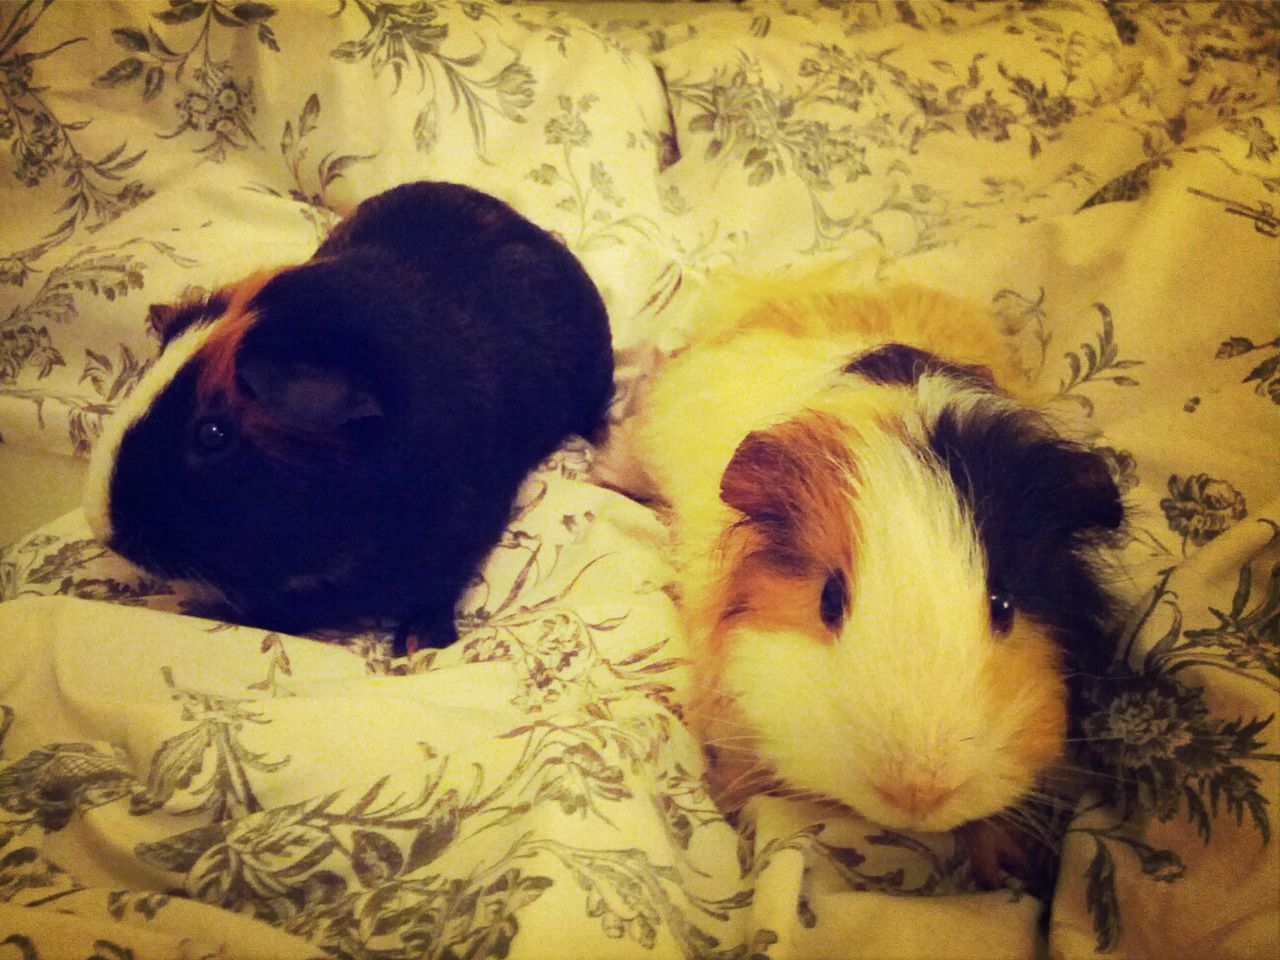 Guinea pigs on bed at home